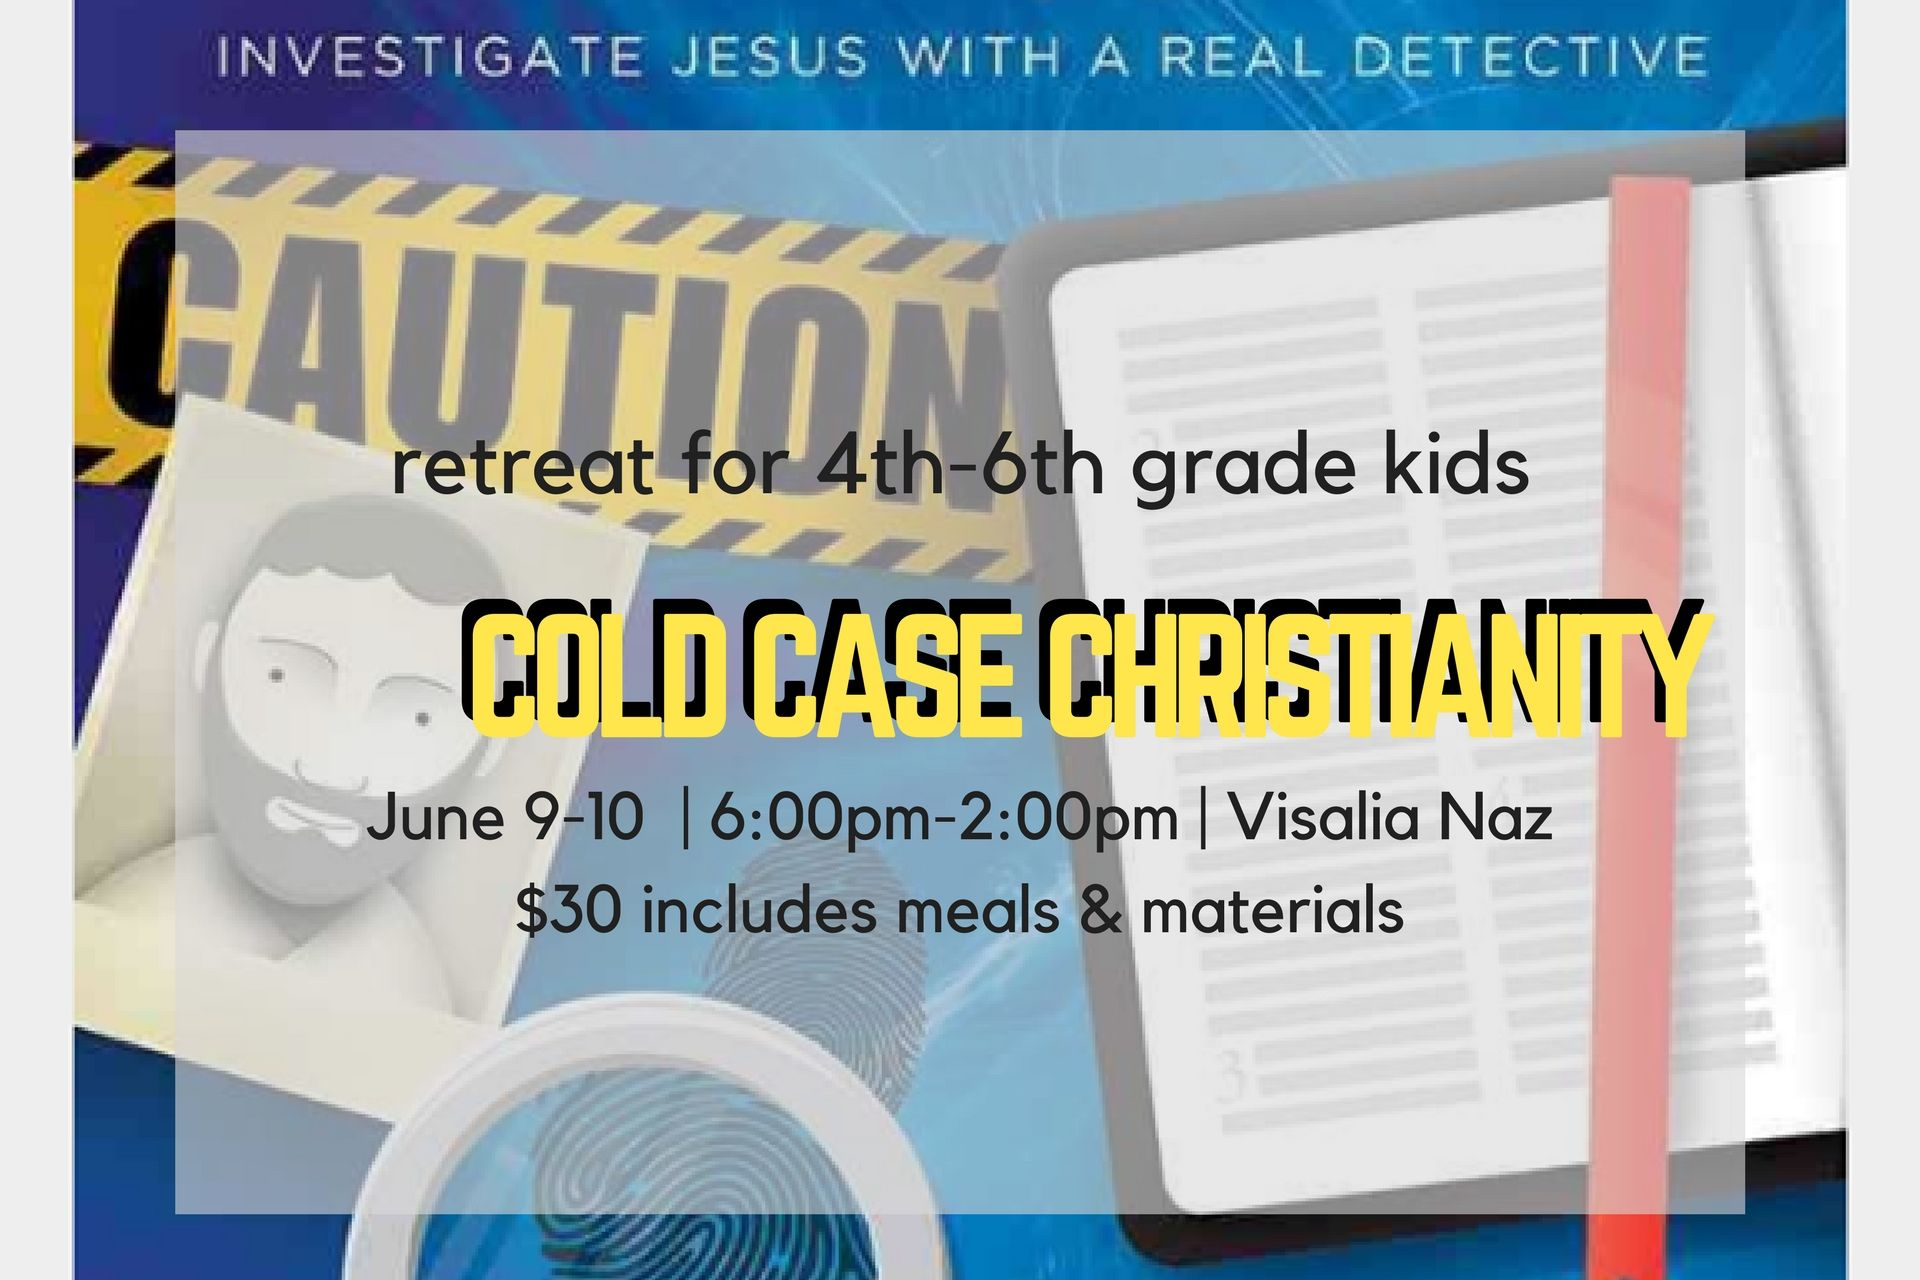 Visalia Naz Church is hosting a Cold-Case Christianity for Kids event on June9th! Very cool...